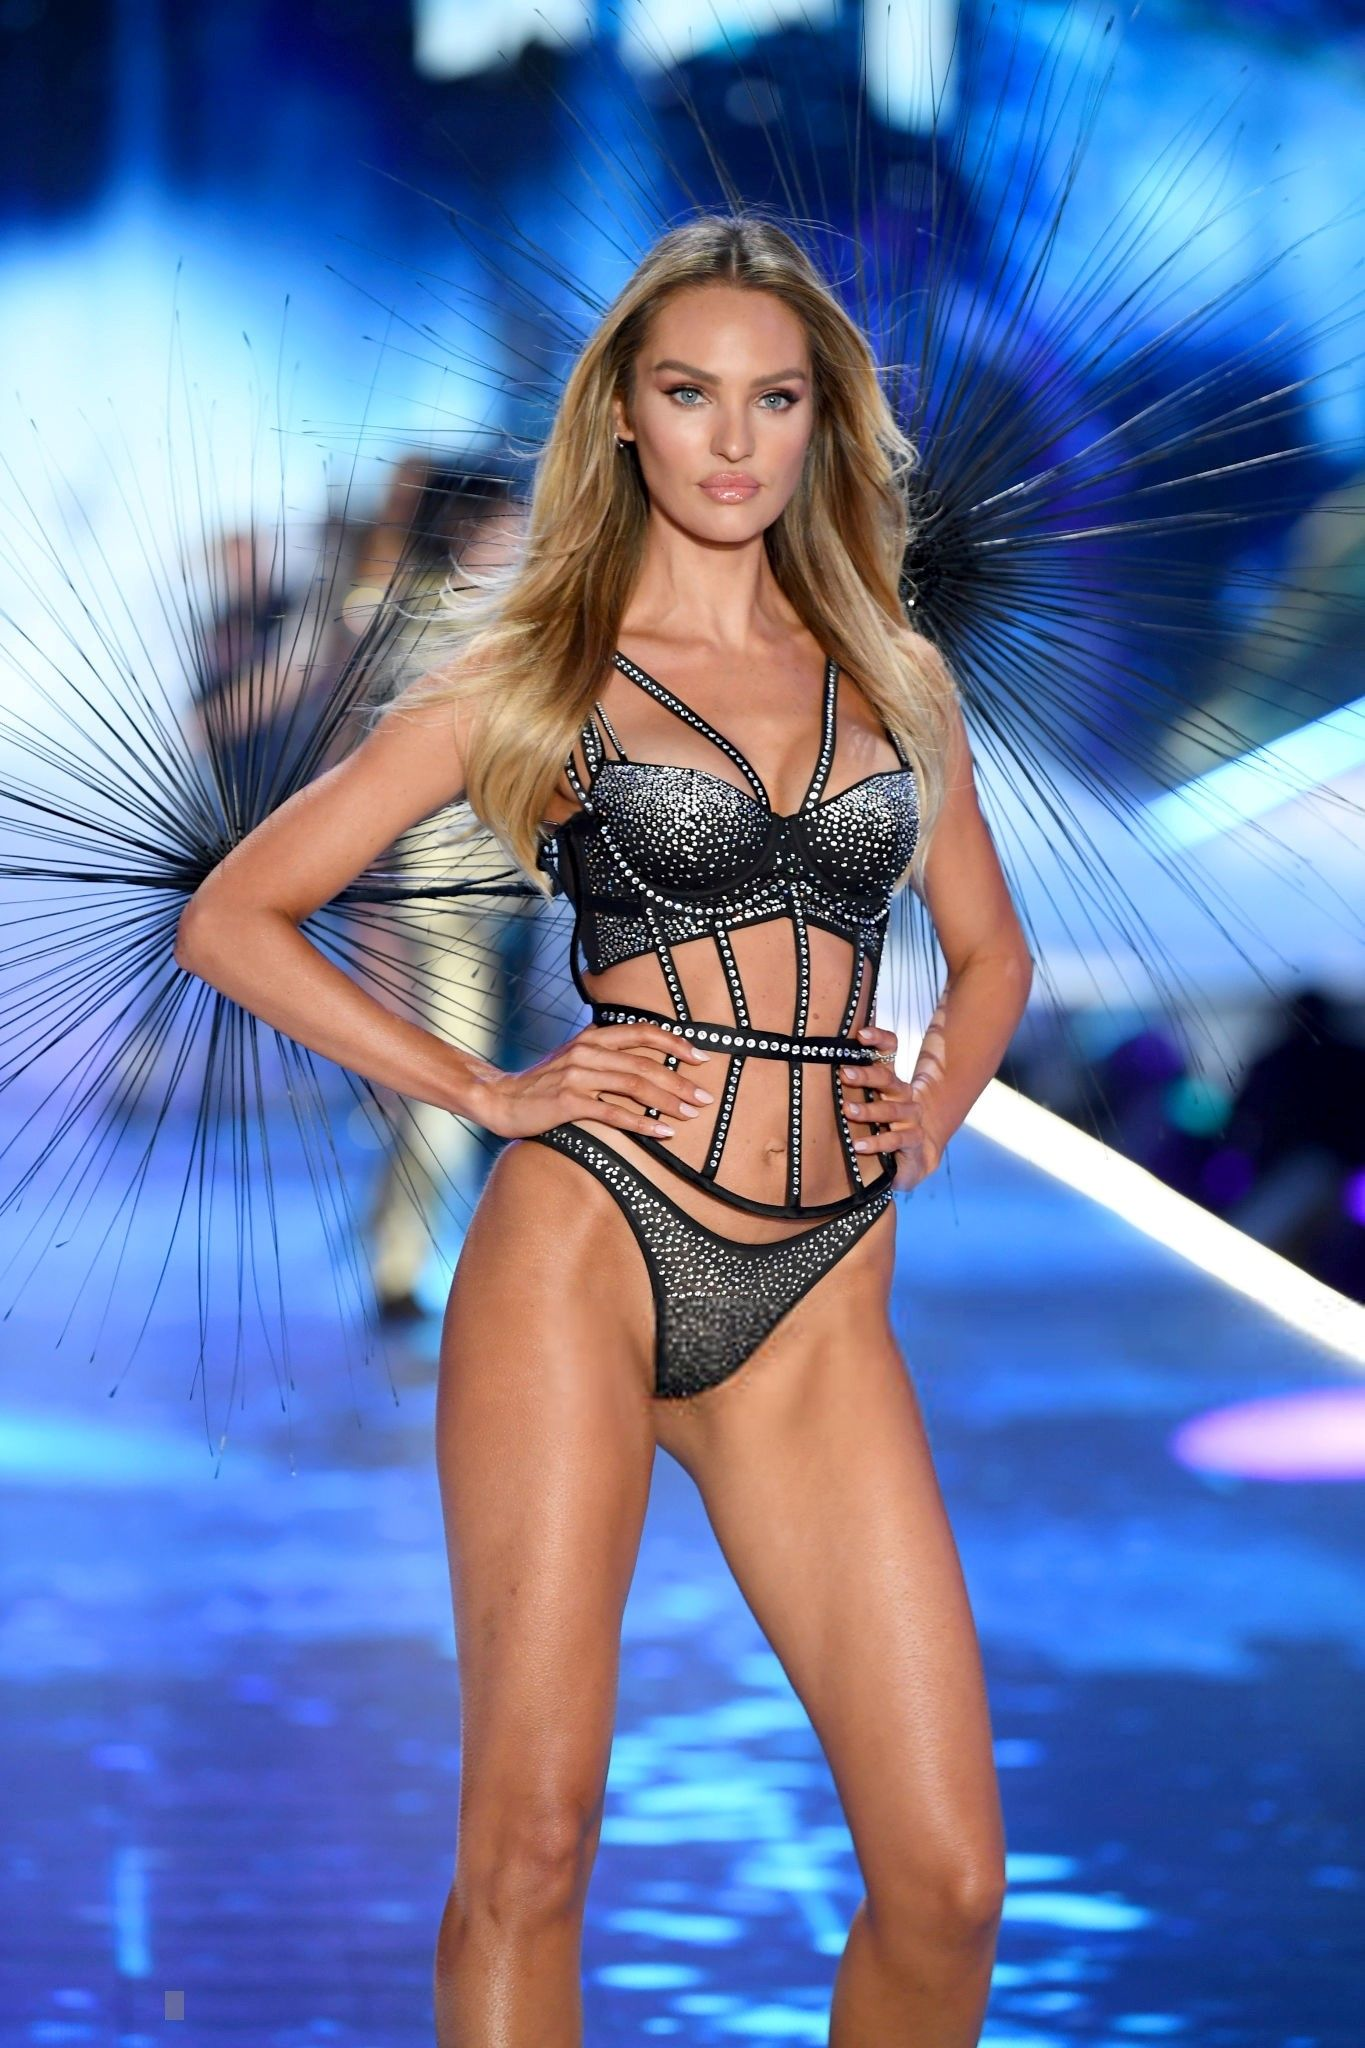 7e7773c7c25e2 All of the Looks from Victoria s Secret Fashion Show 2018   Candice  Swanepoel  candiceswanepoel  victoriassecretfashionshow